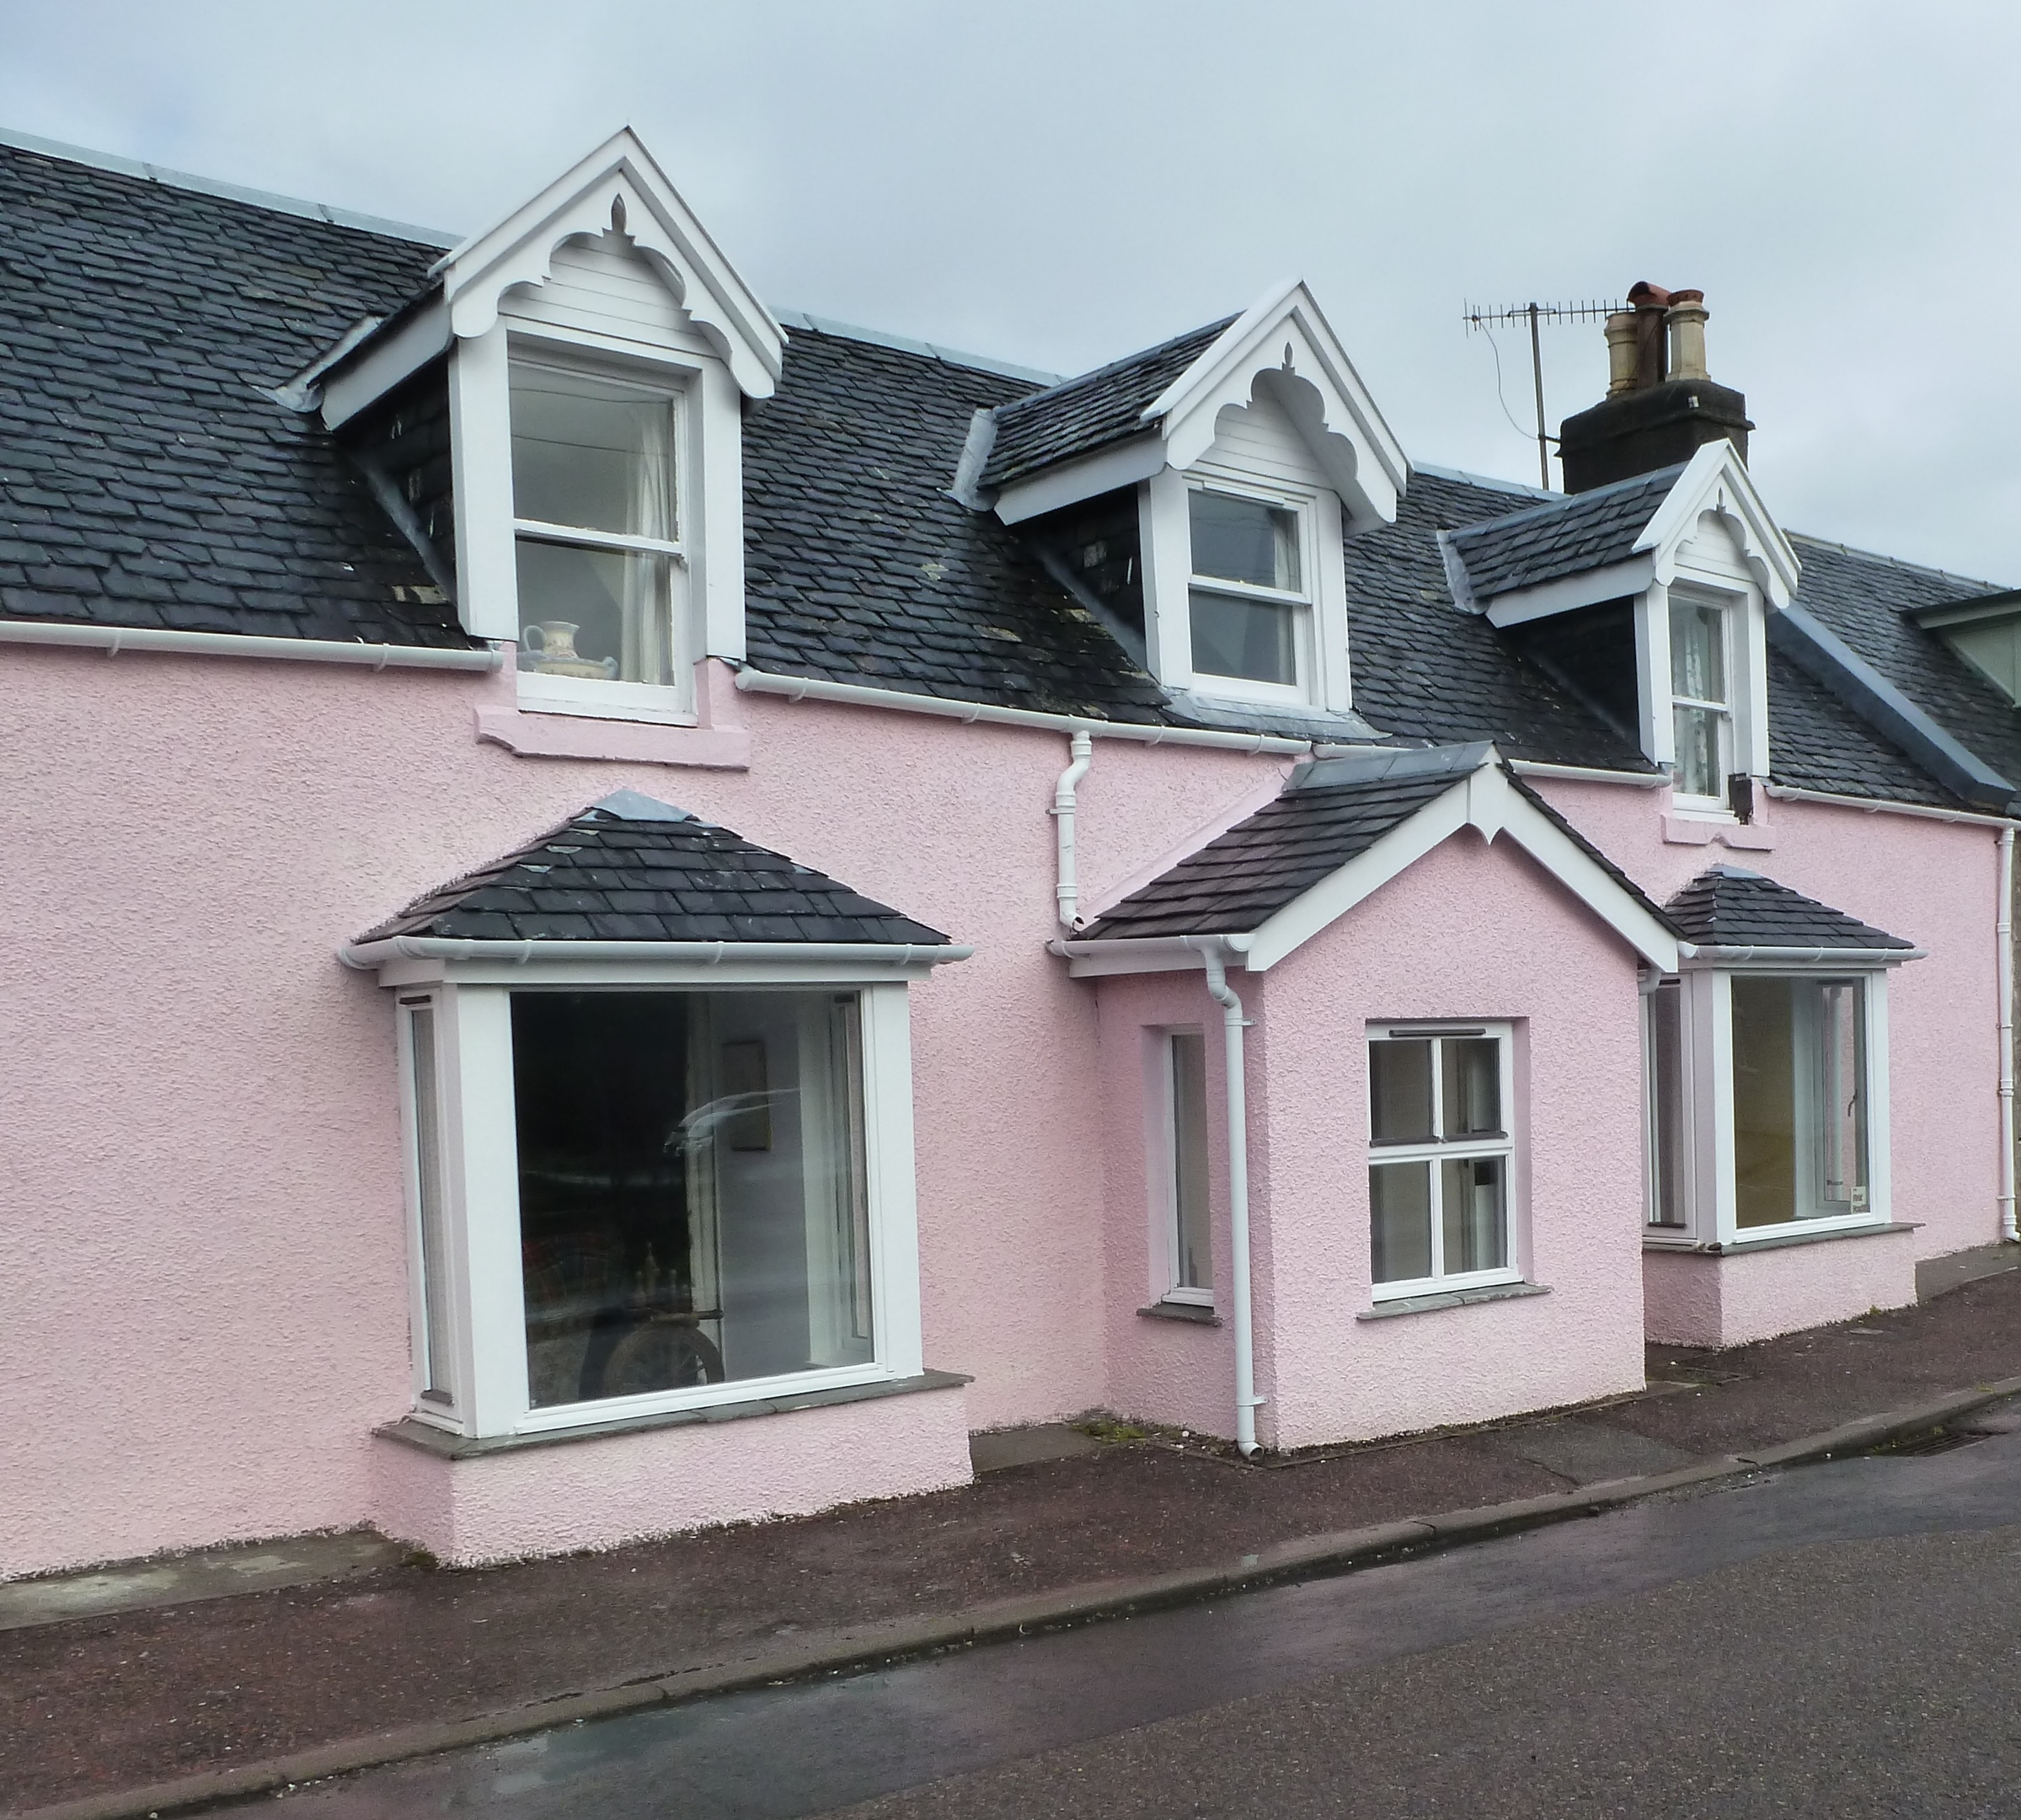 House Finding Websites: You'll Have No Trouble Finding This House In Plockton